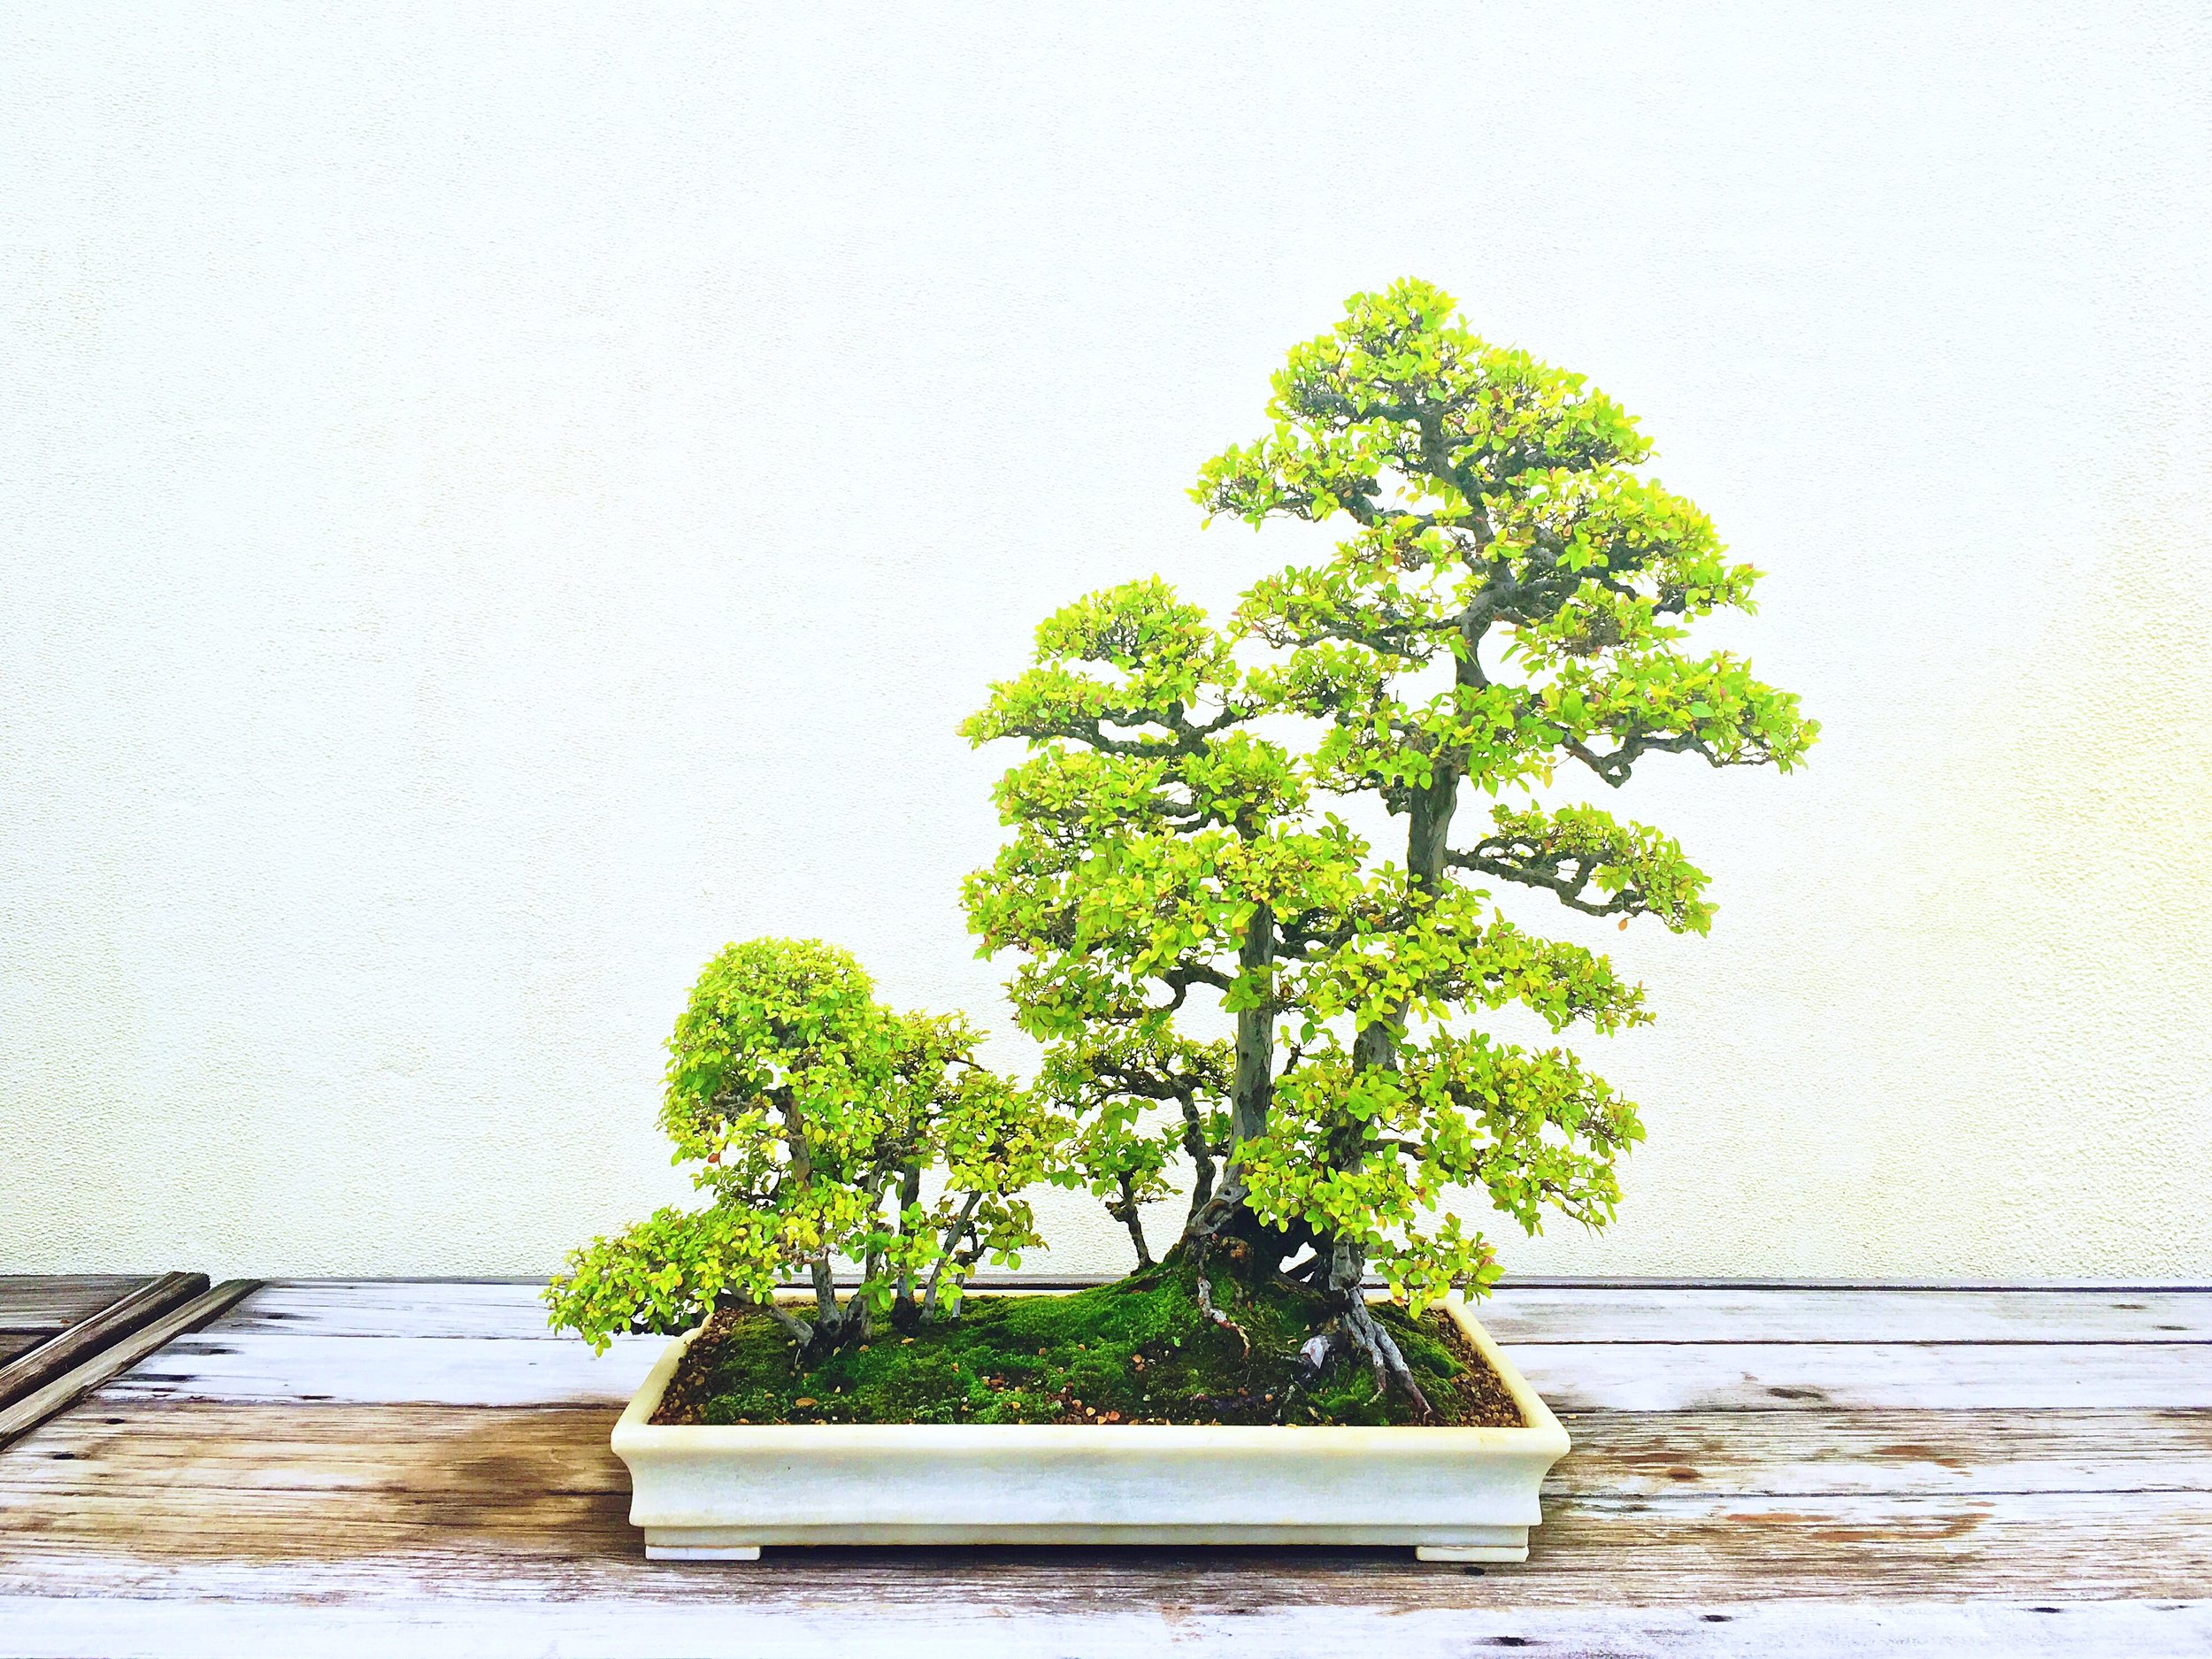 The National Bonsai Museum in Washington DC